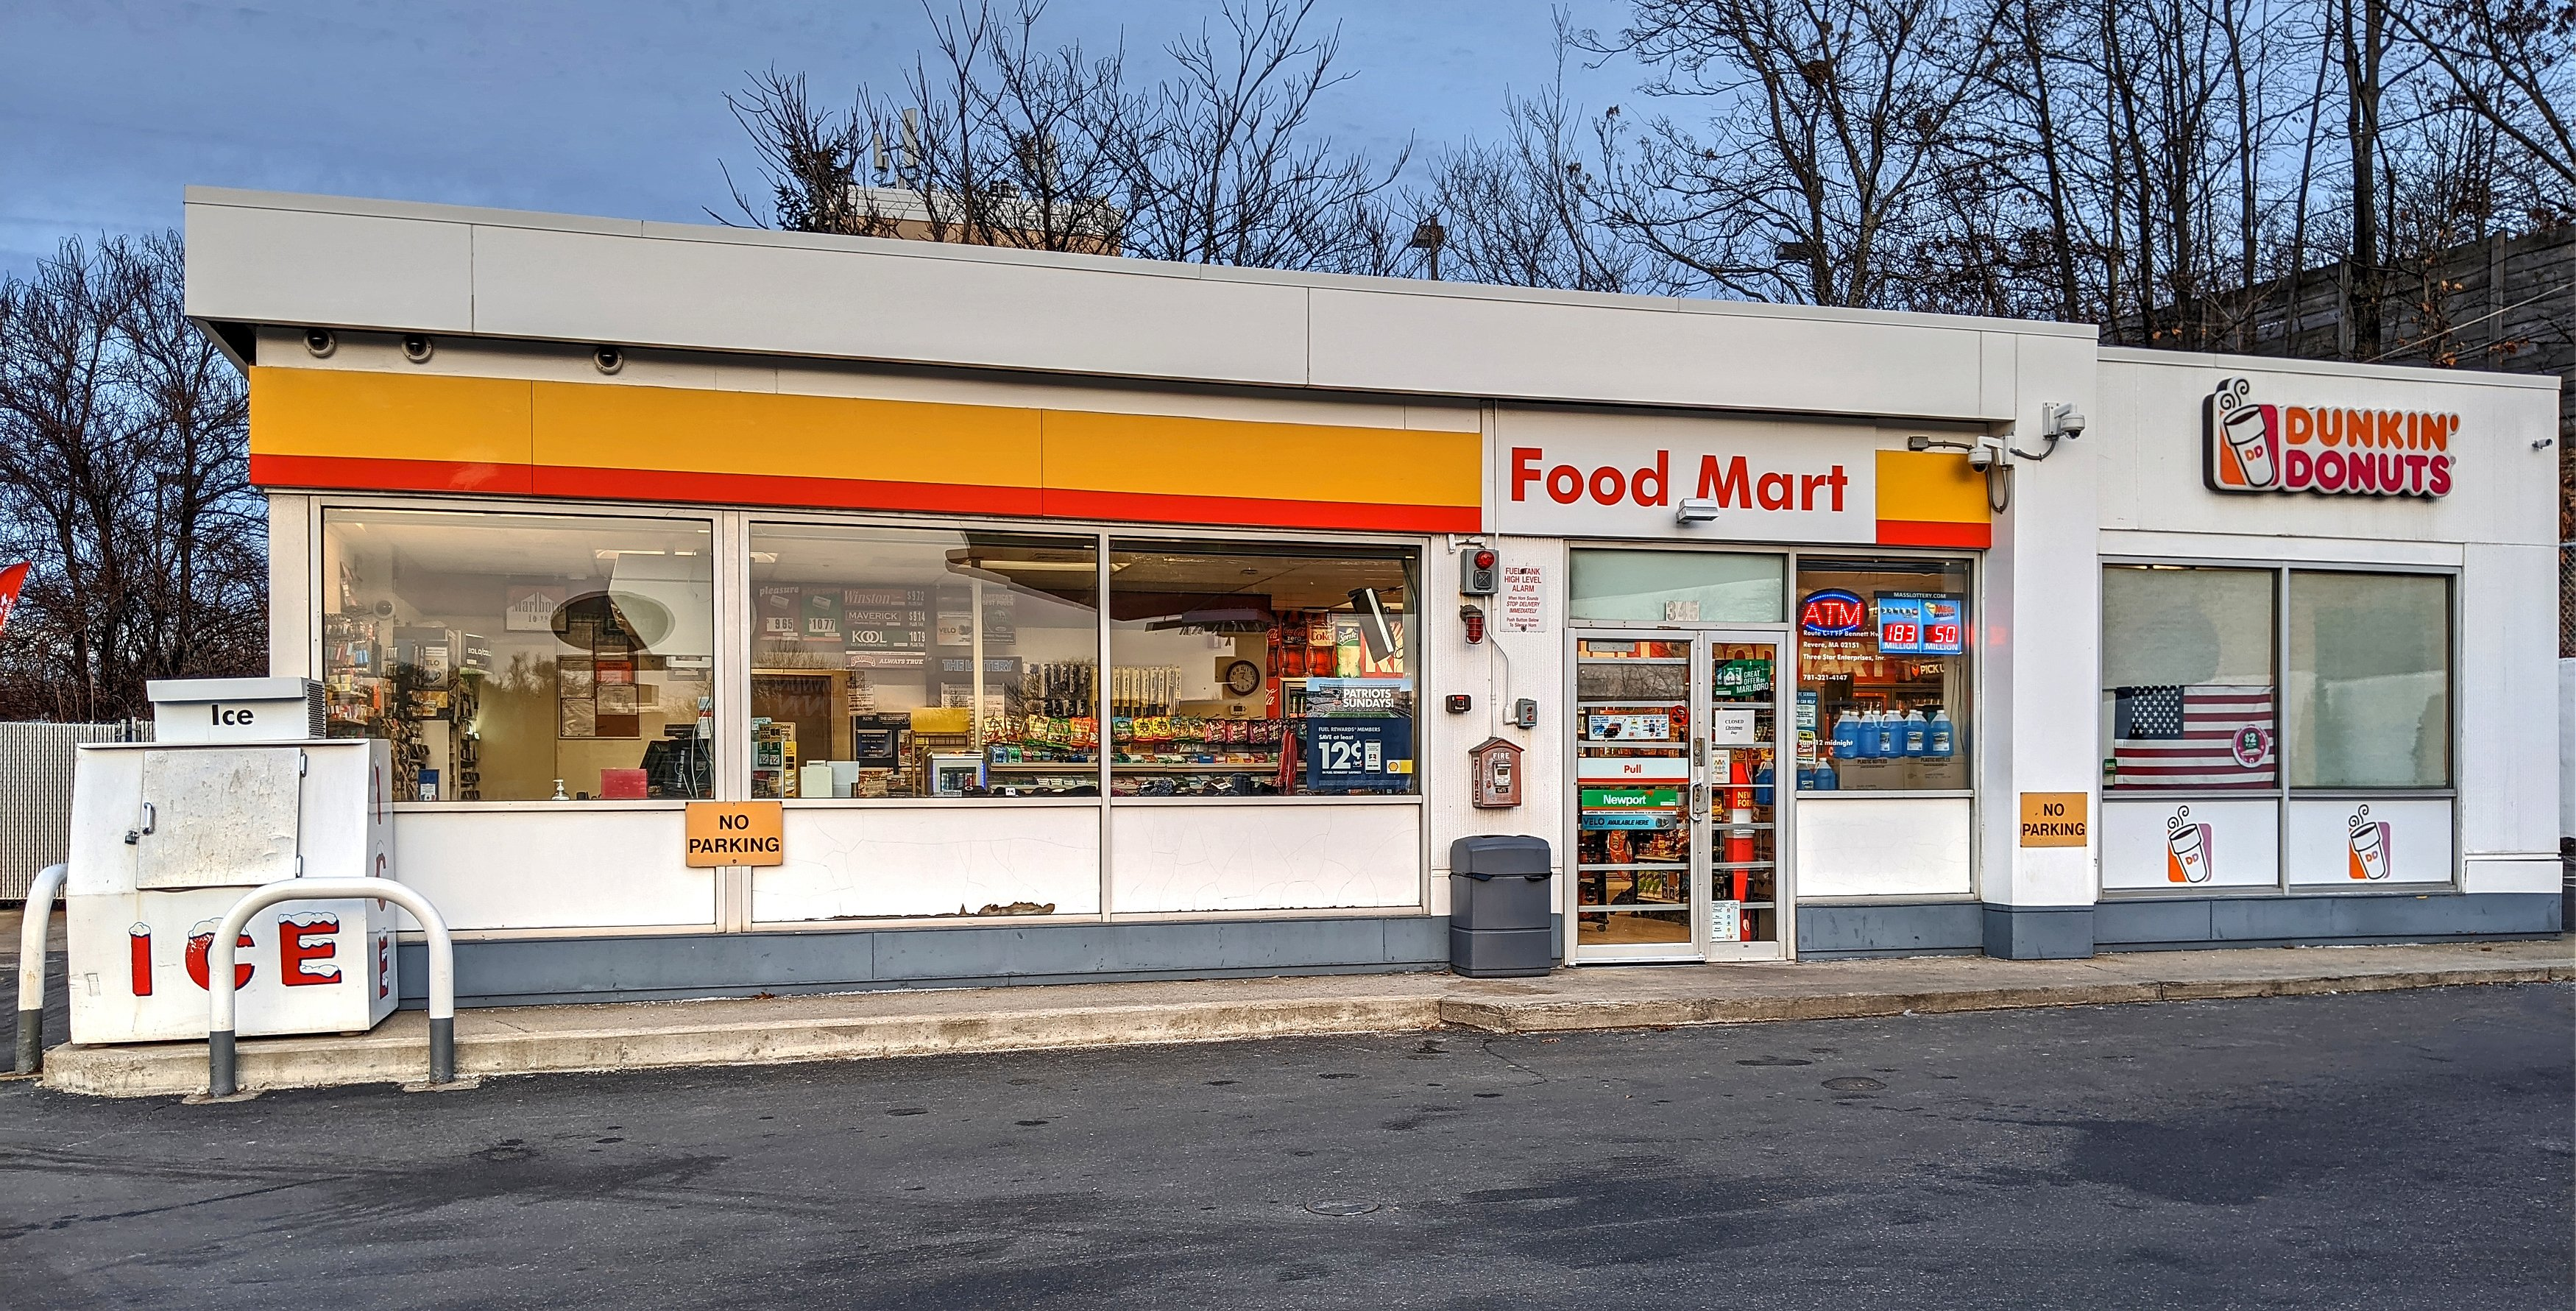 Dunkin' Donuts convenience store